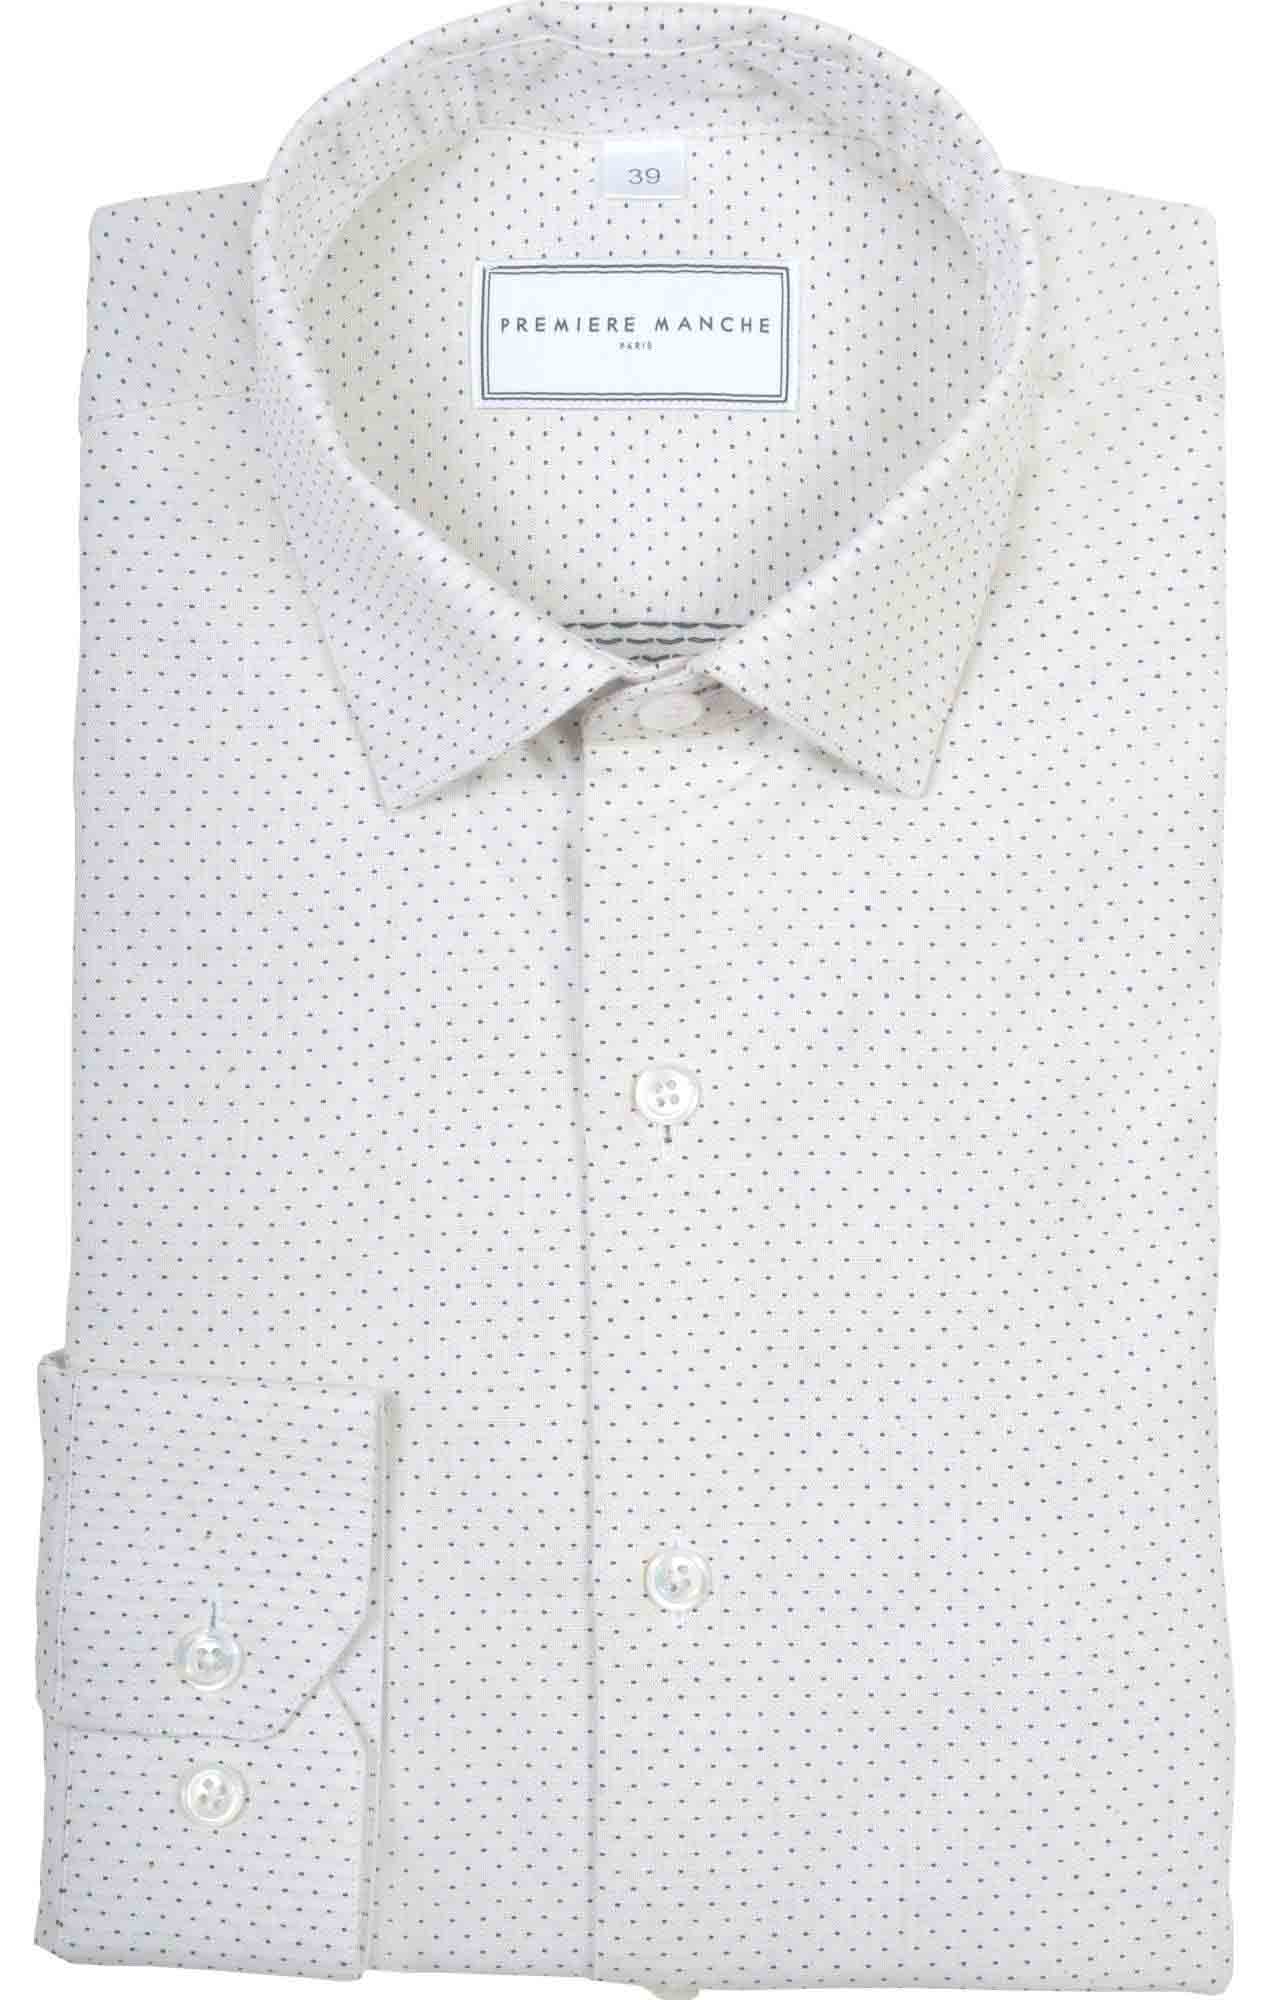 White oxford shirt with dots